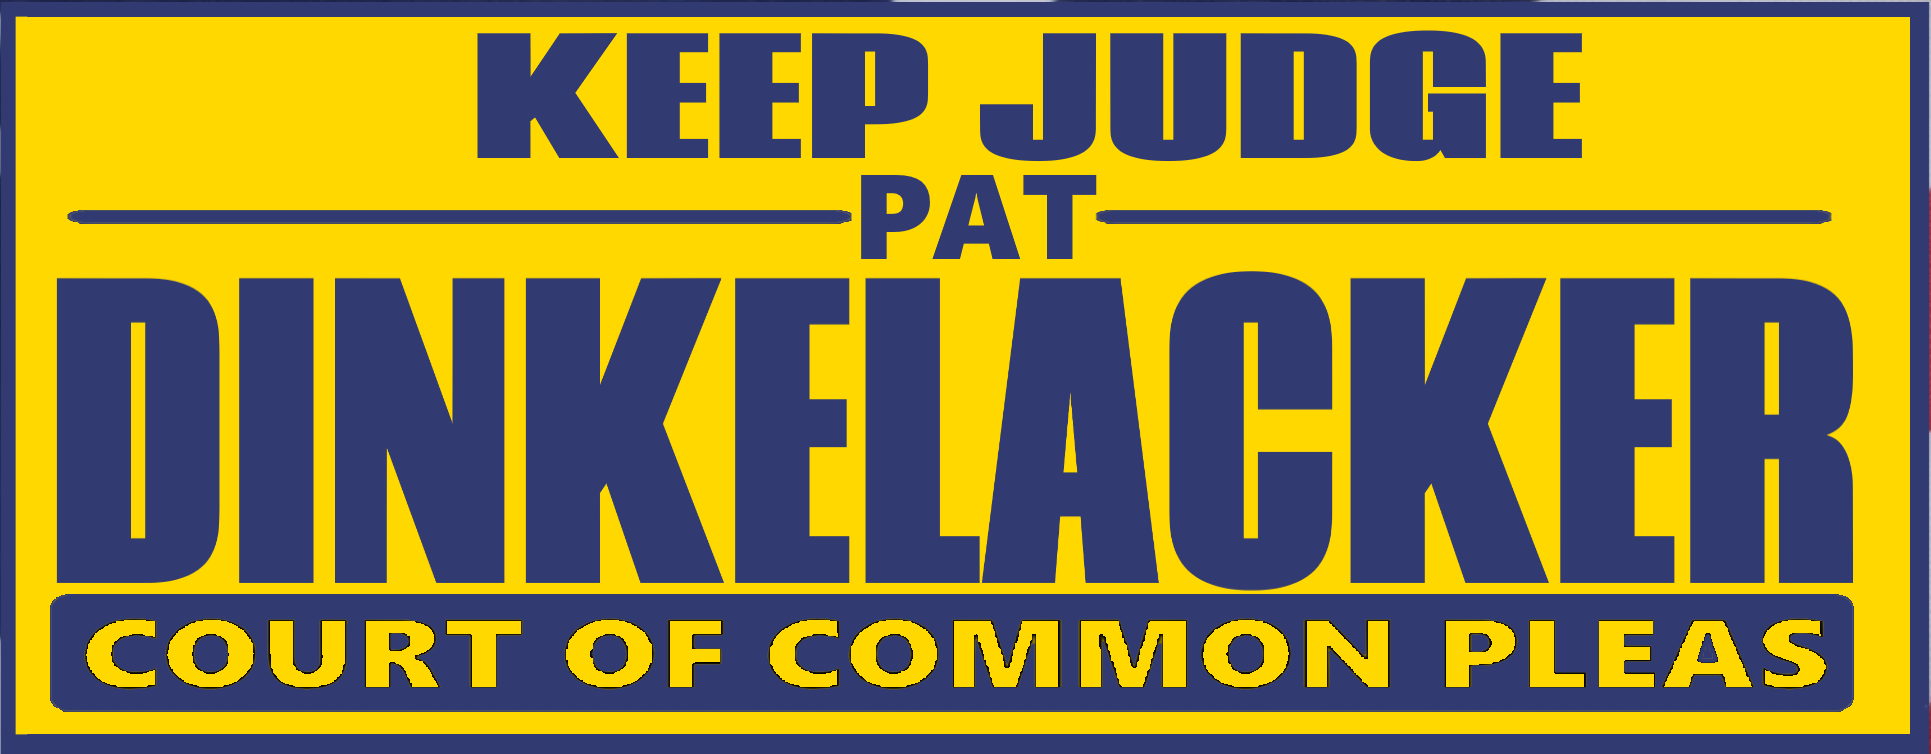 Re Elect Judge Dinkelacker Logo